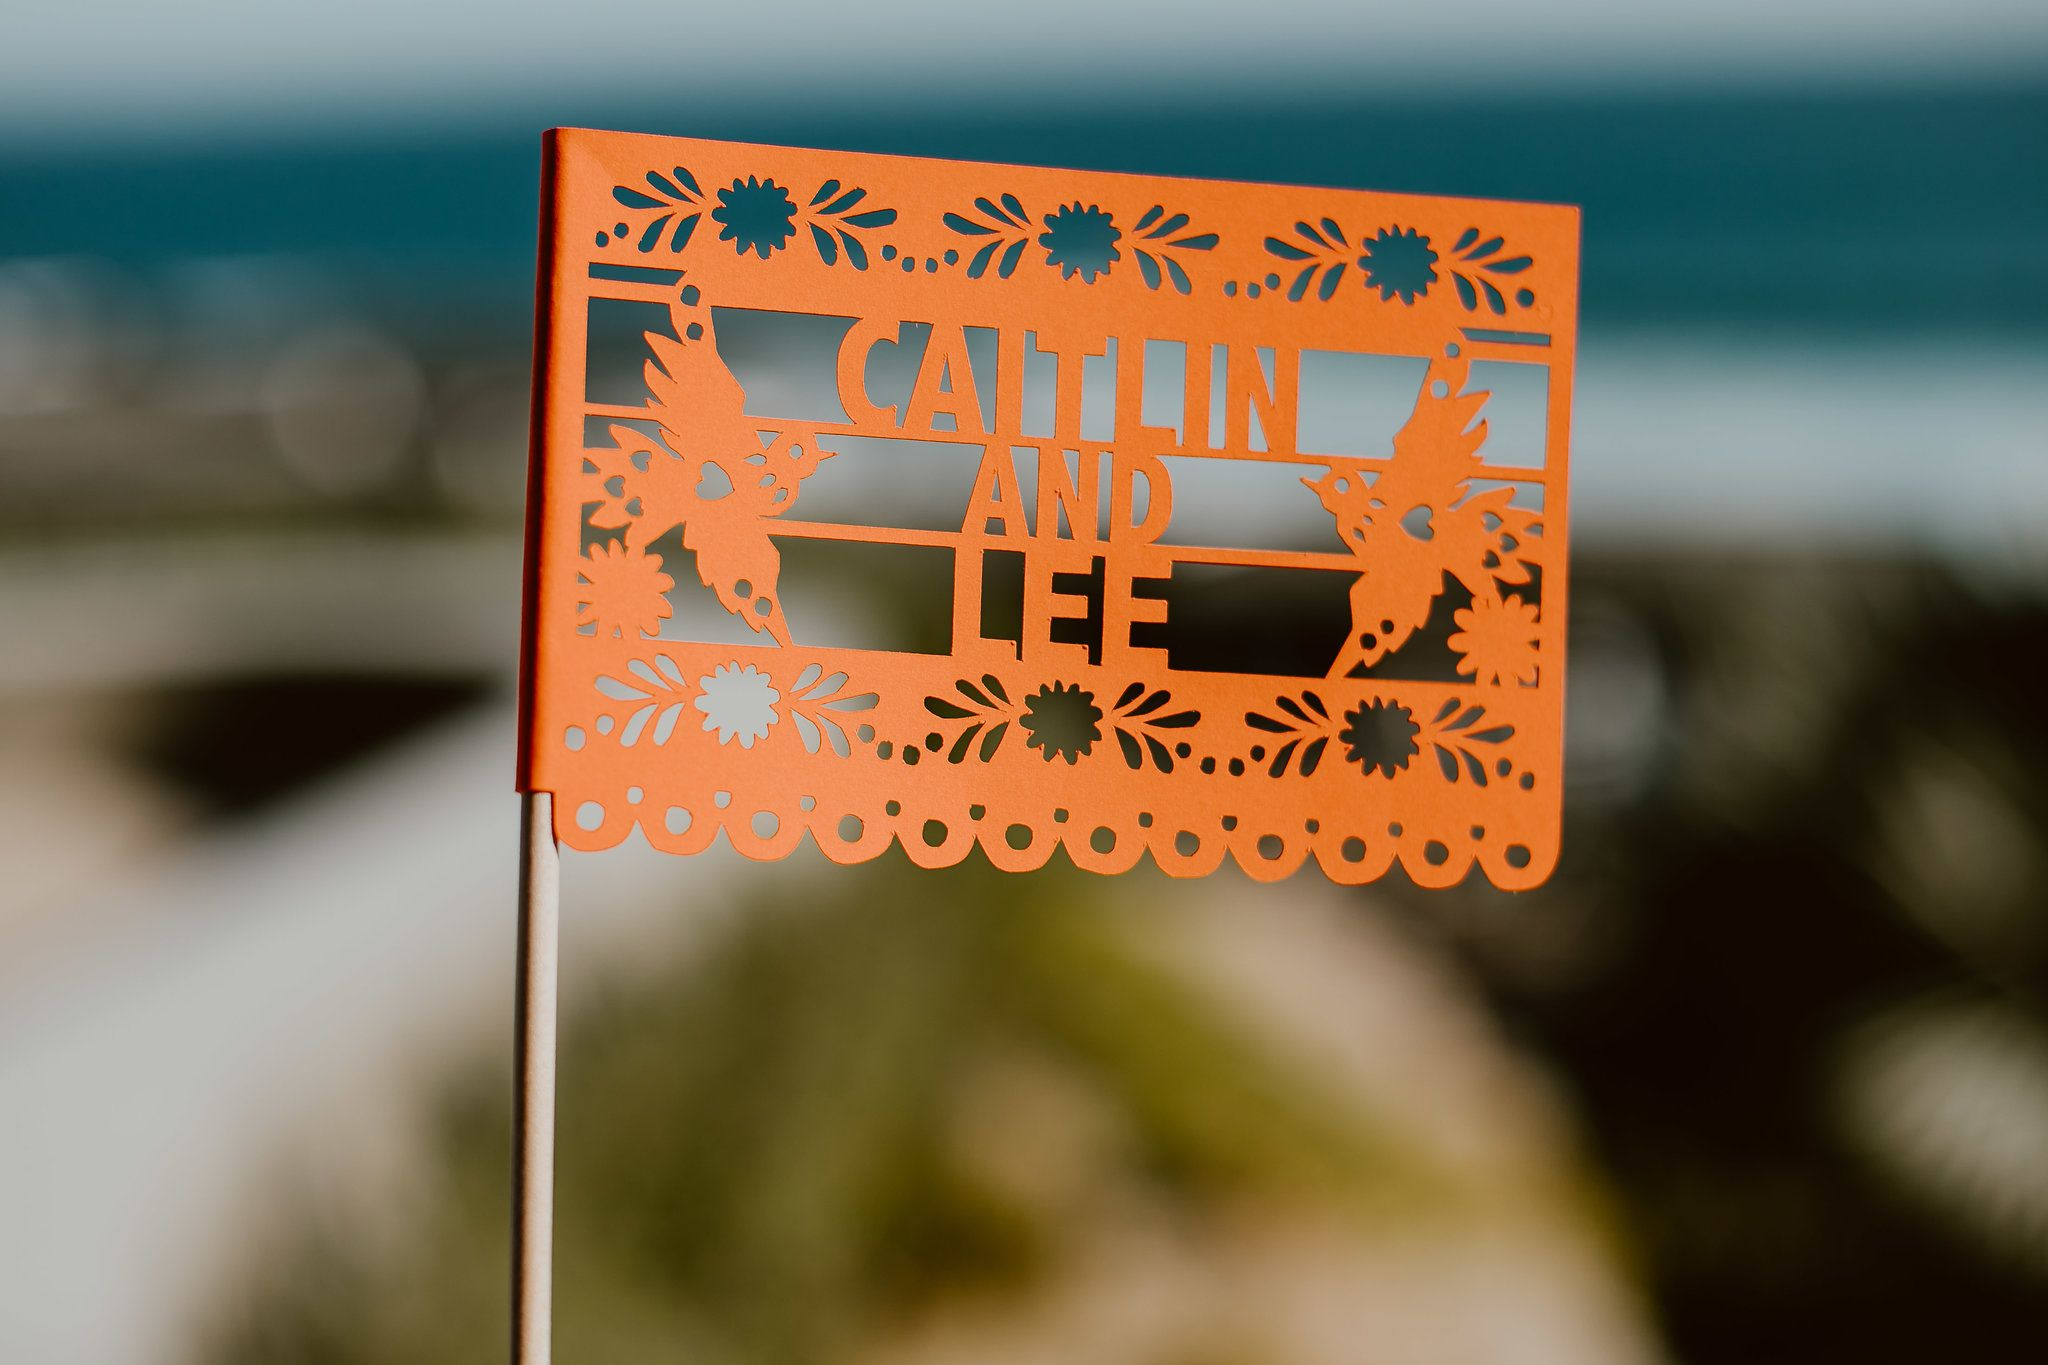 Wedding Details with Papel Picado personalized for the Bride and Groom